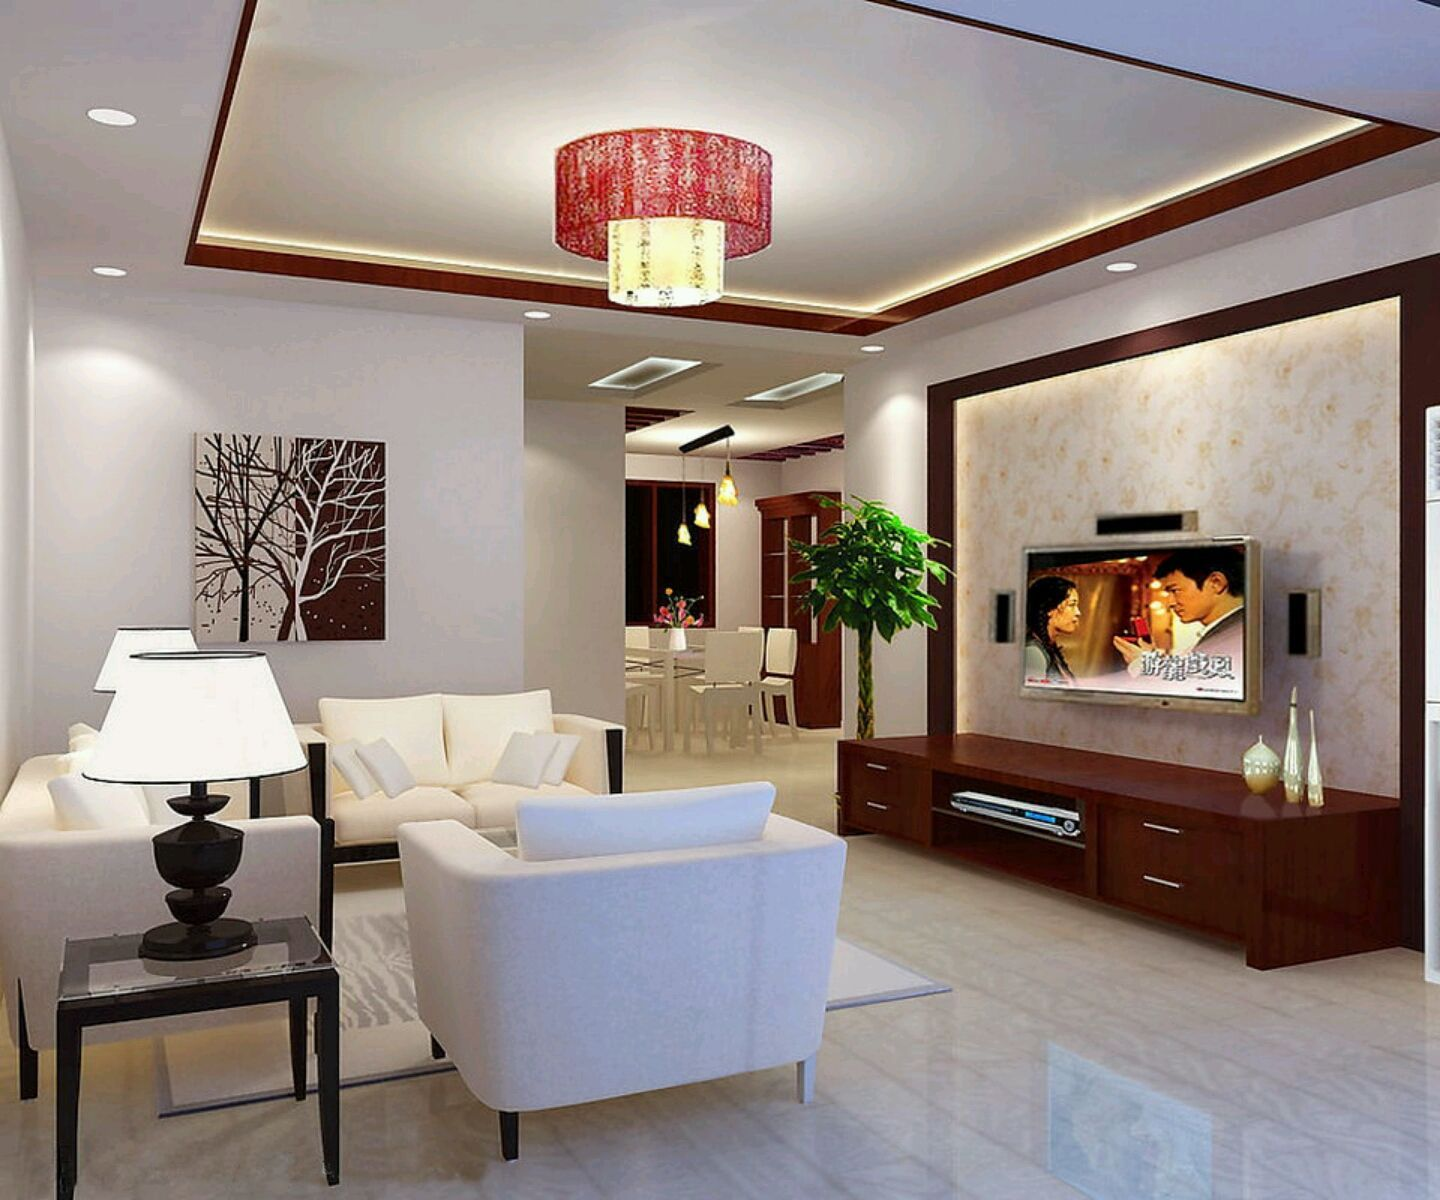 amazing false ceiling living room design idea in diseÑo